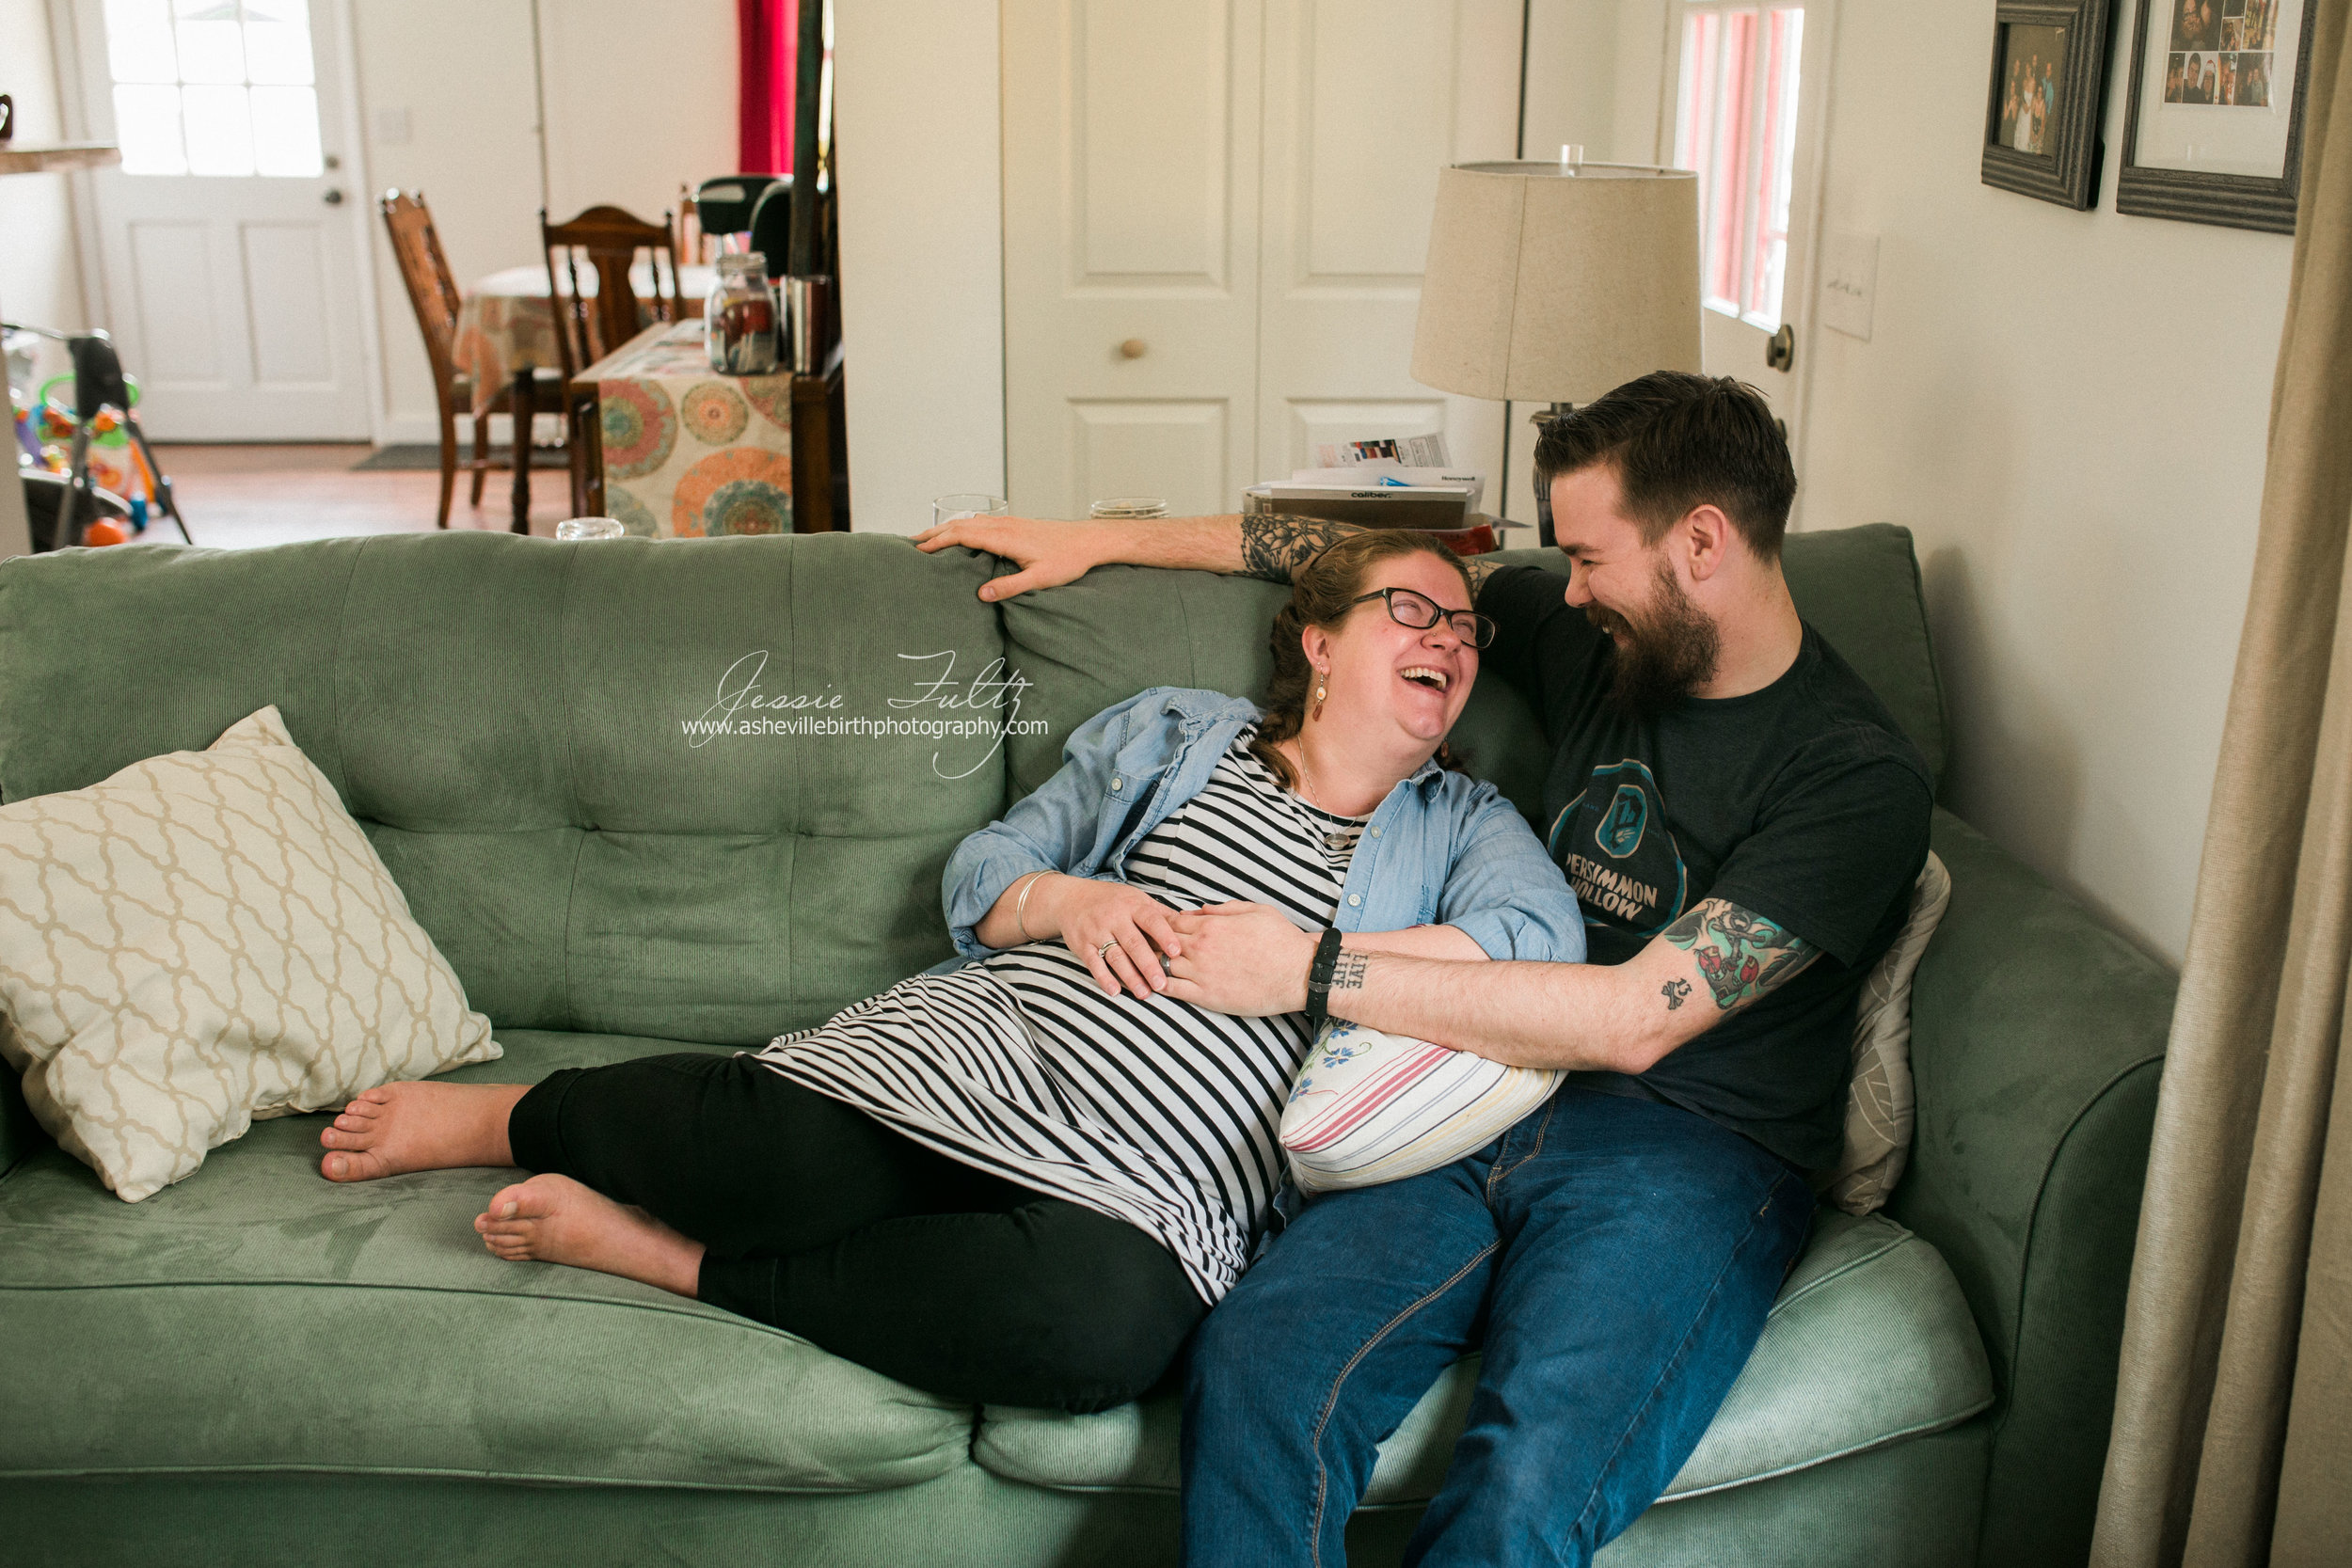 pregnant woman in striped dress and husband cuddling up on the couch and laughing